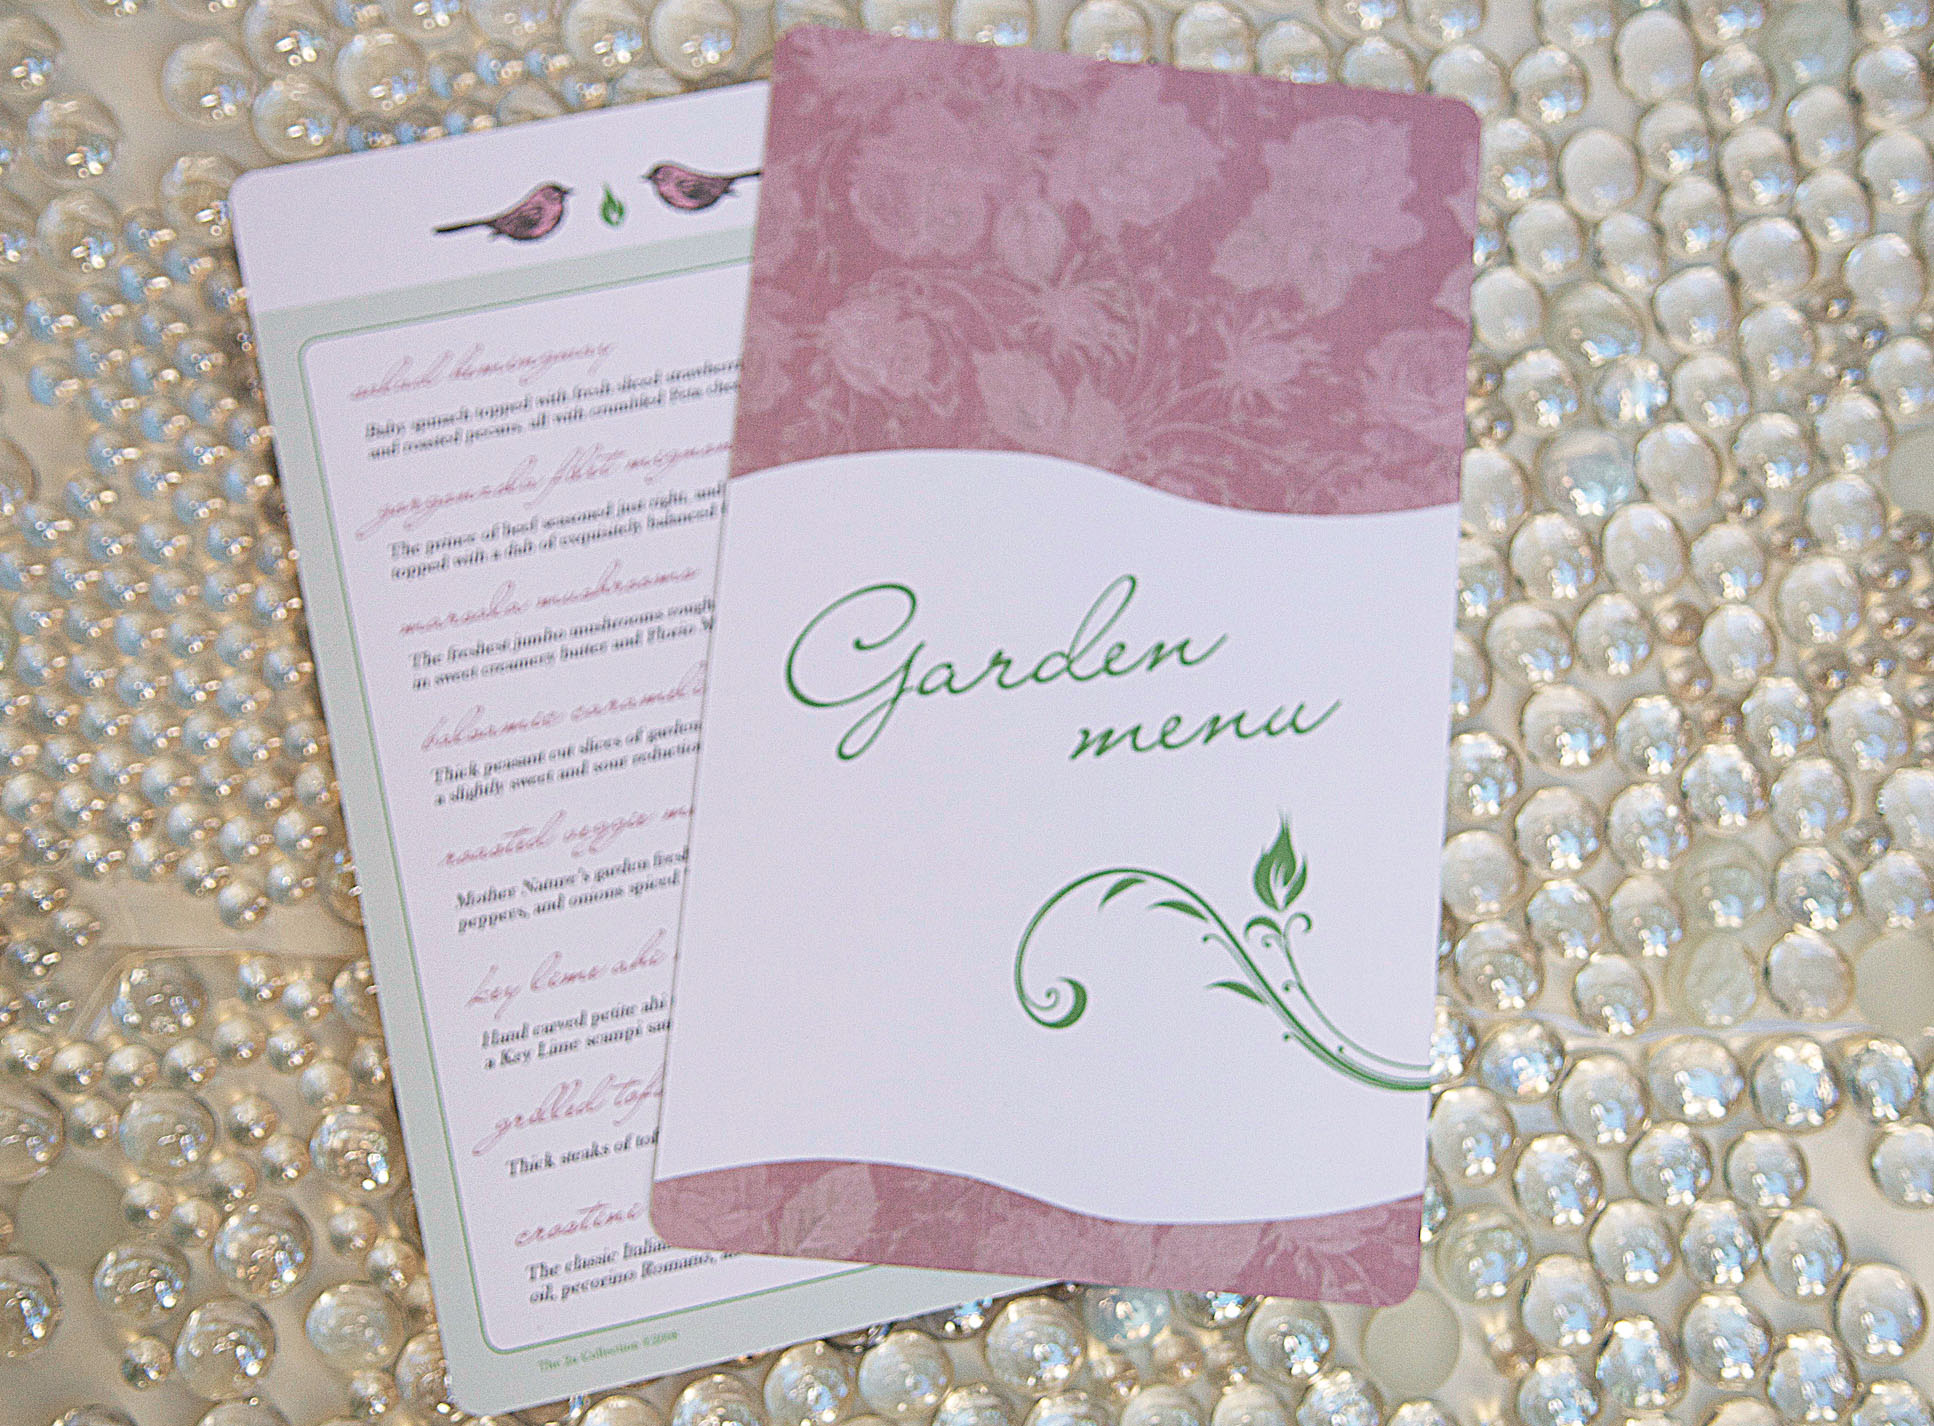 67 Thomas-Dixon Wedding Menu.jpg